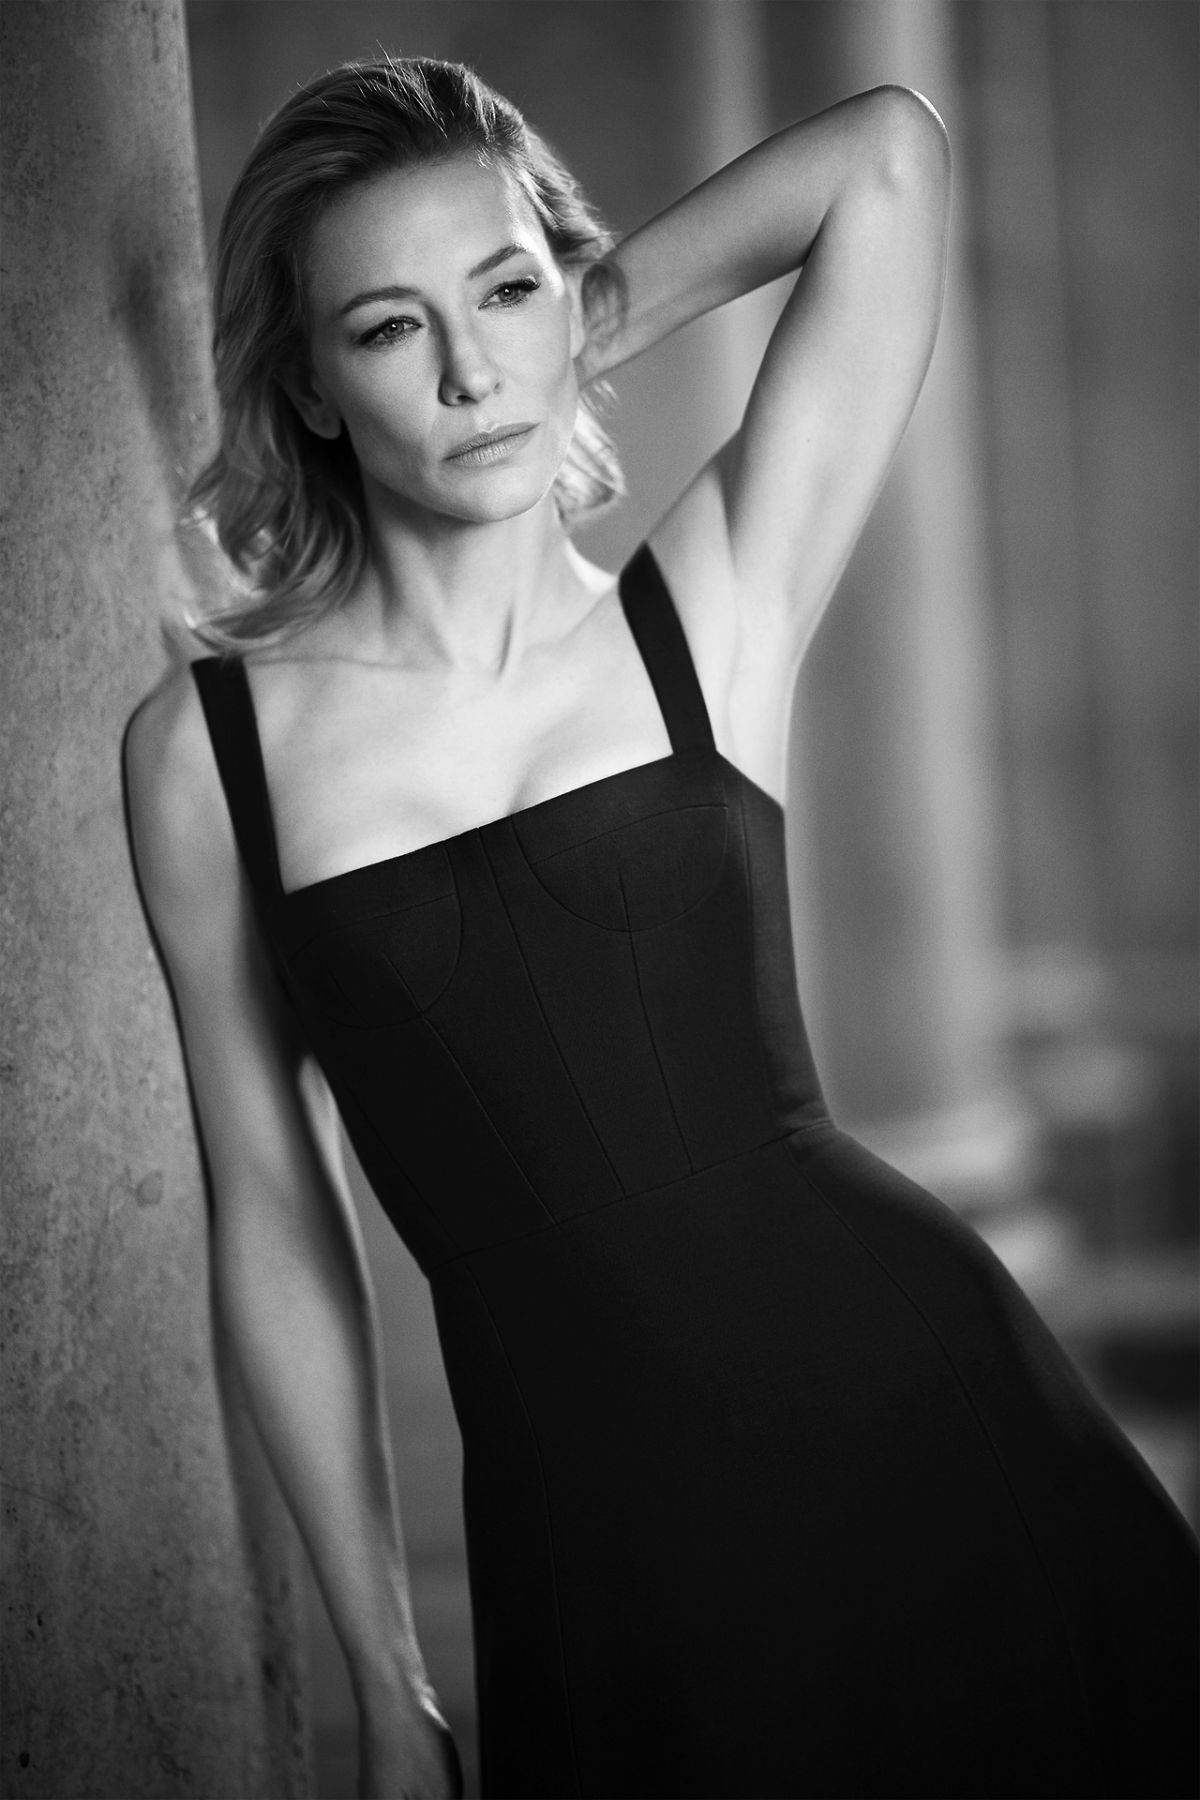 CATE BLANCHETT for Town & Country, June/July 2017 ... Cate Blanchett